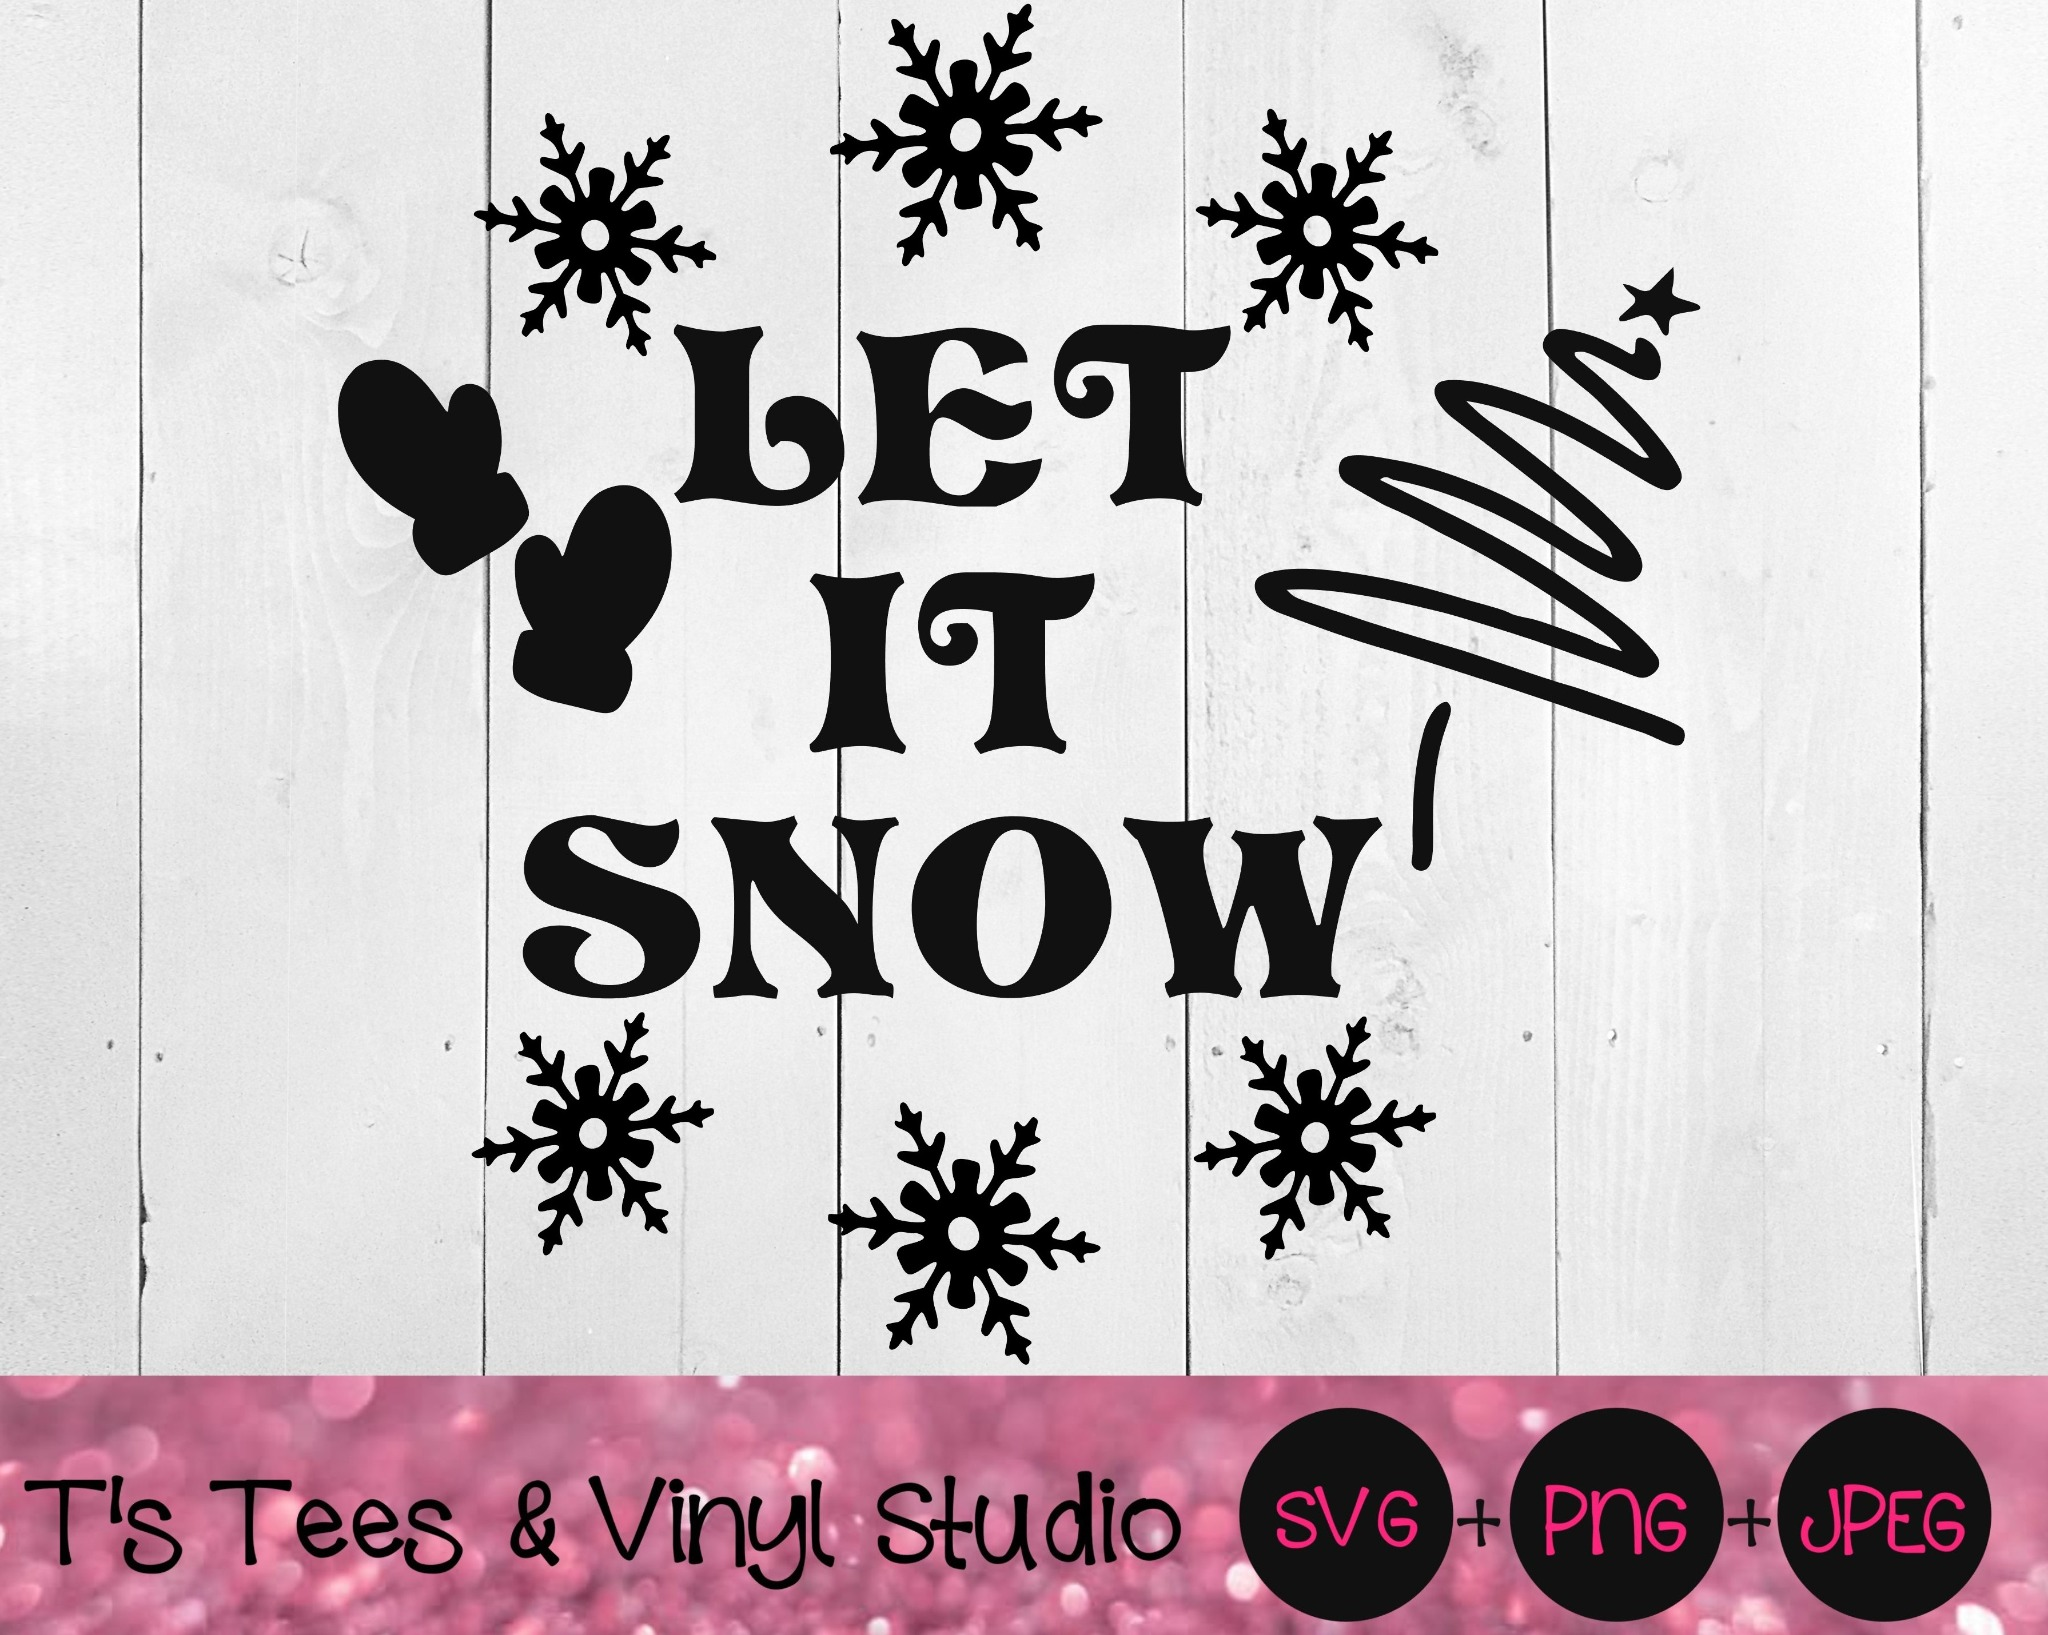 Let It Snow Svg, Christmas Svg, Merry Christmas, Winter, Most Wonderful Time Of The Year, Snowflakes